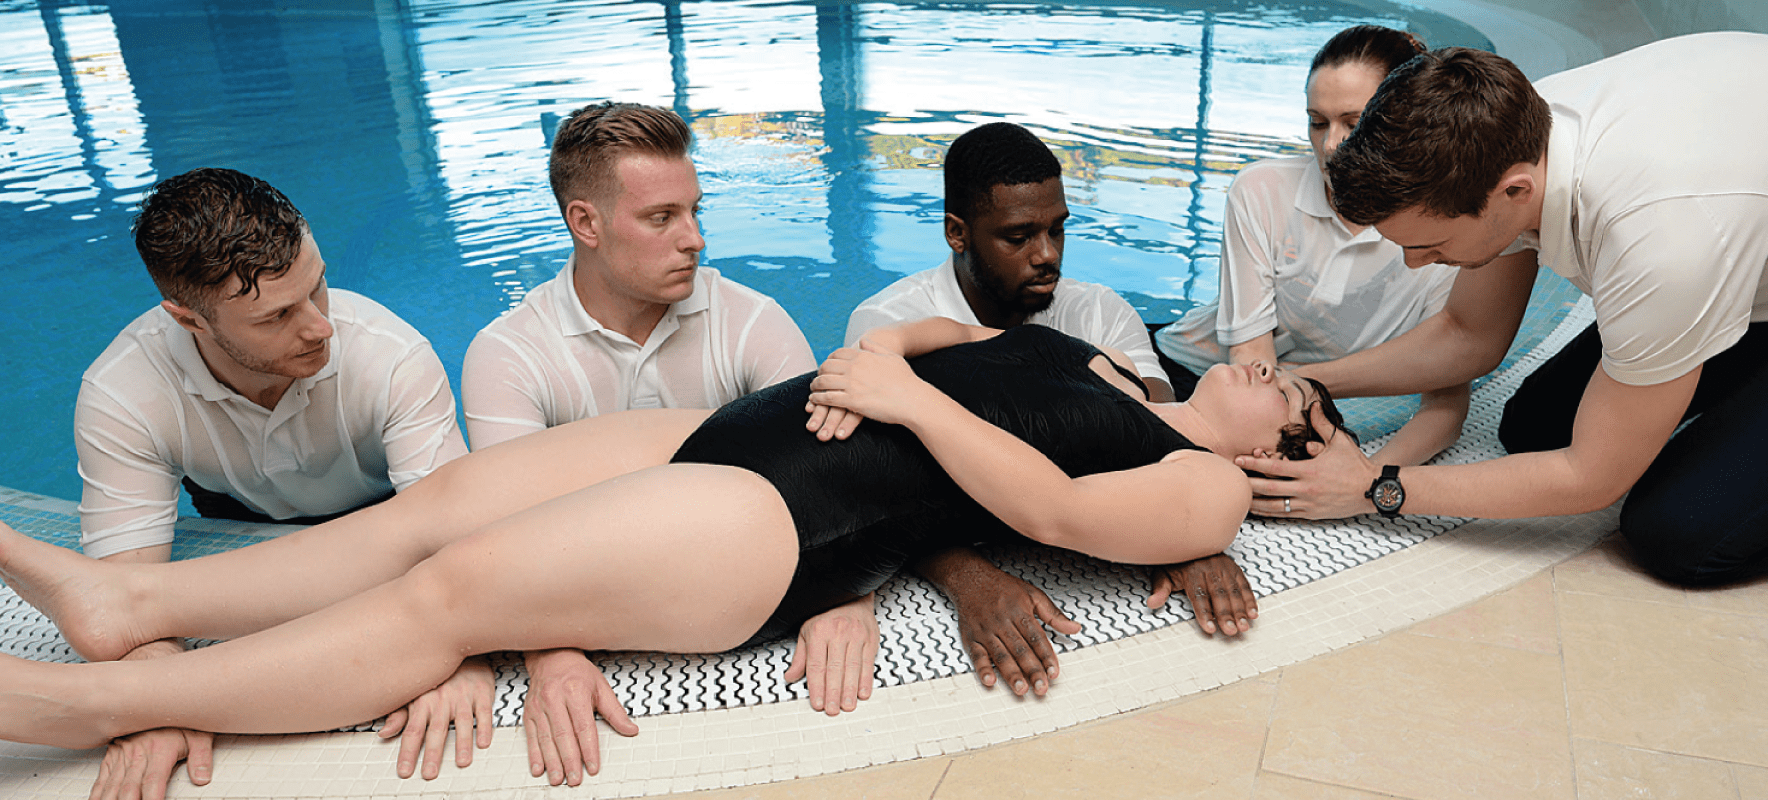 RLSS UK Emergency Response Pool Training (ER-Pool)